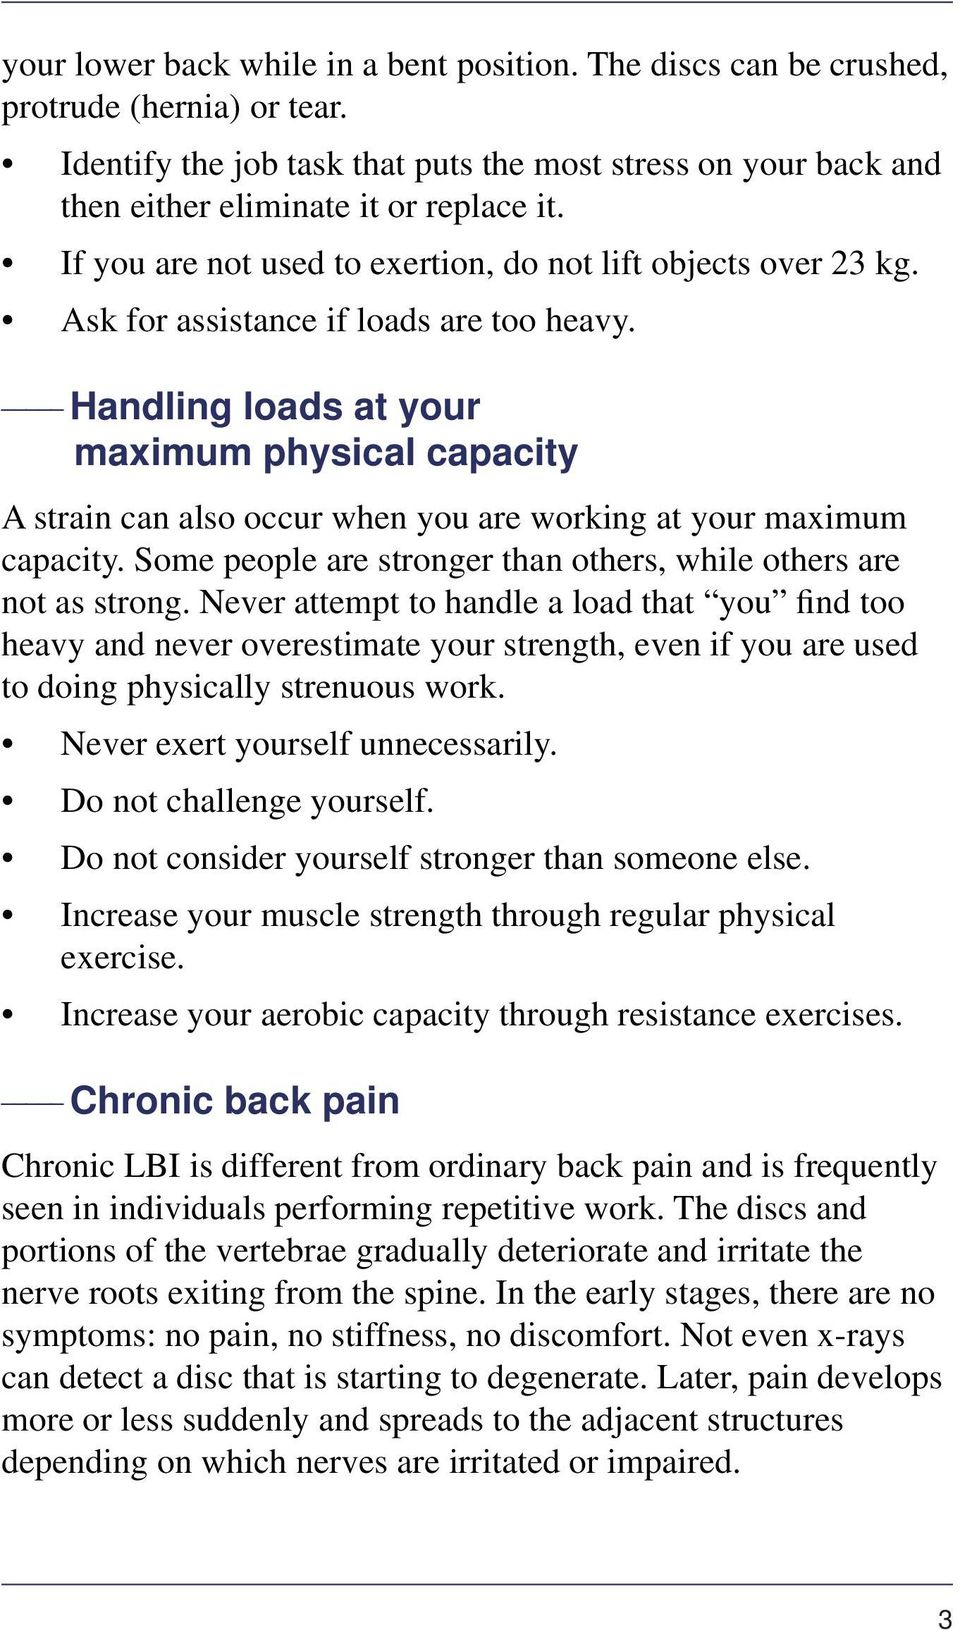 Handling loads at your maximum physical capacity A strain can also occur when you are working at your maximum capacity. Some people are stronger than others, while others are not as strong.